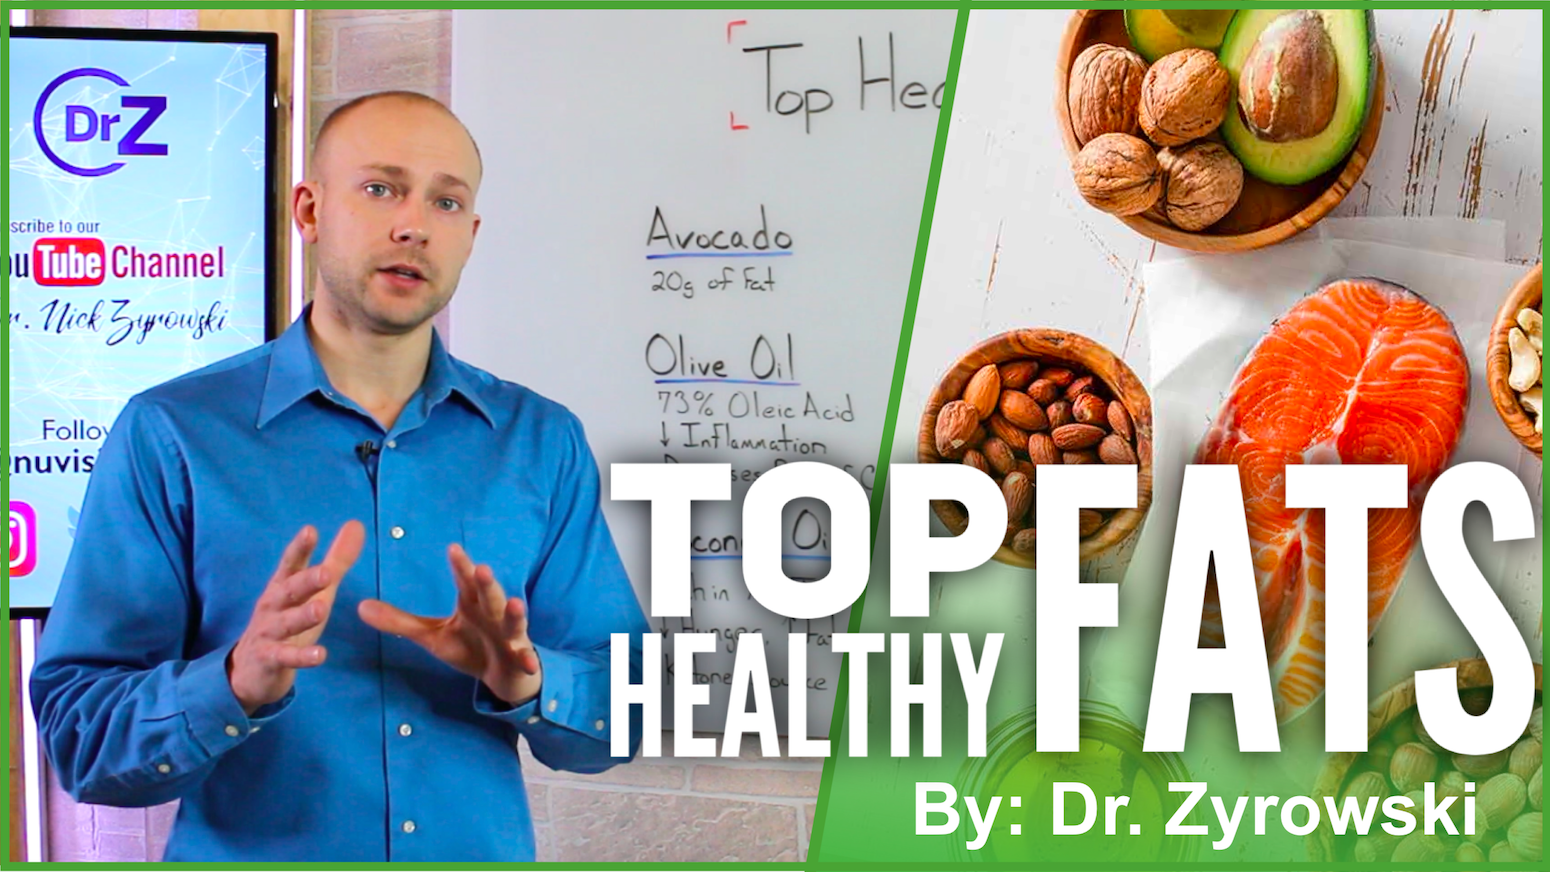 Top Healthy Fats